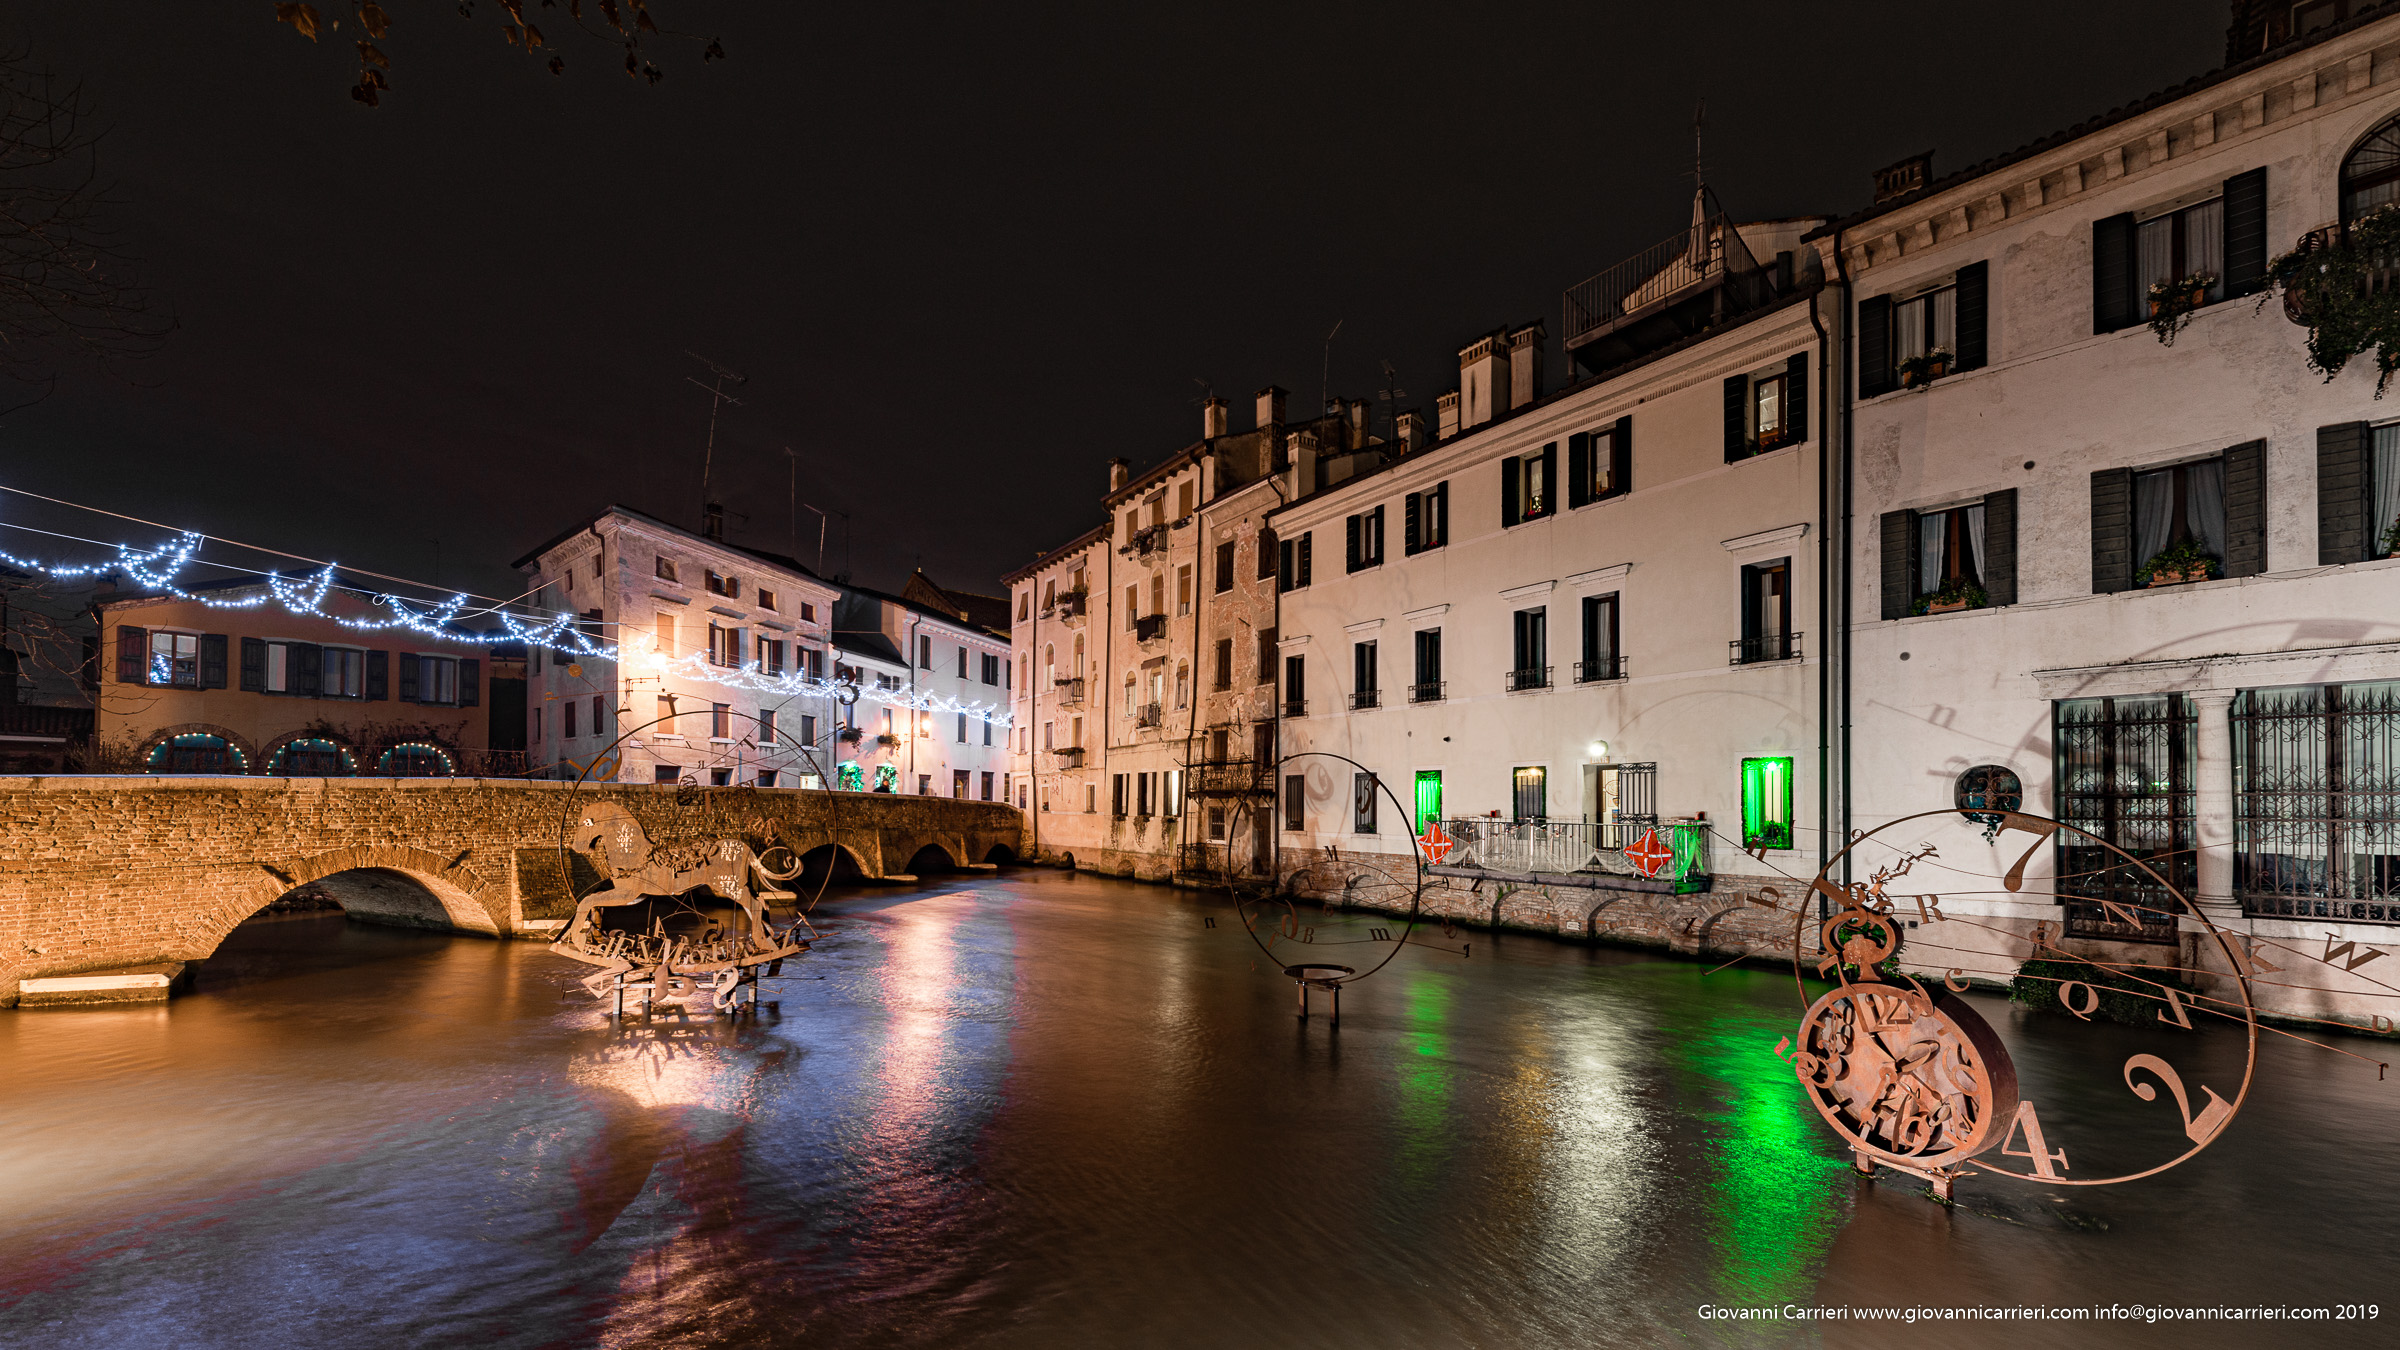 Photographs of Treviso